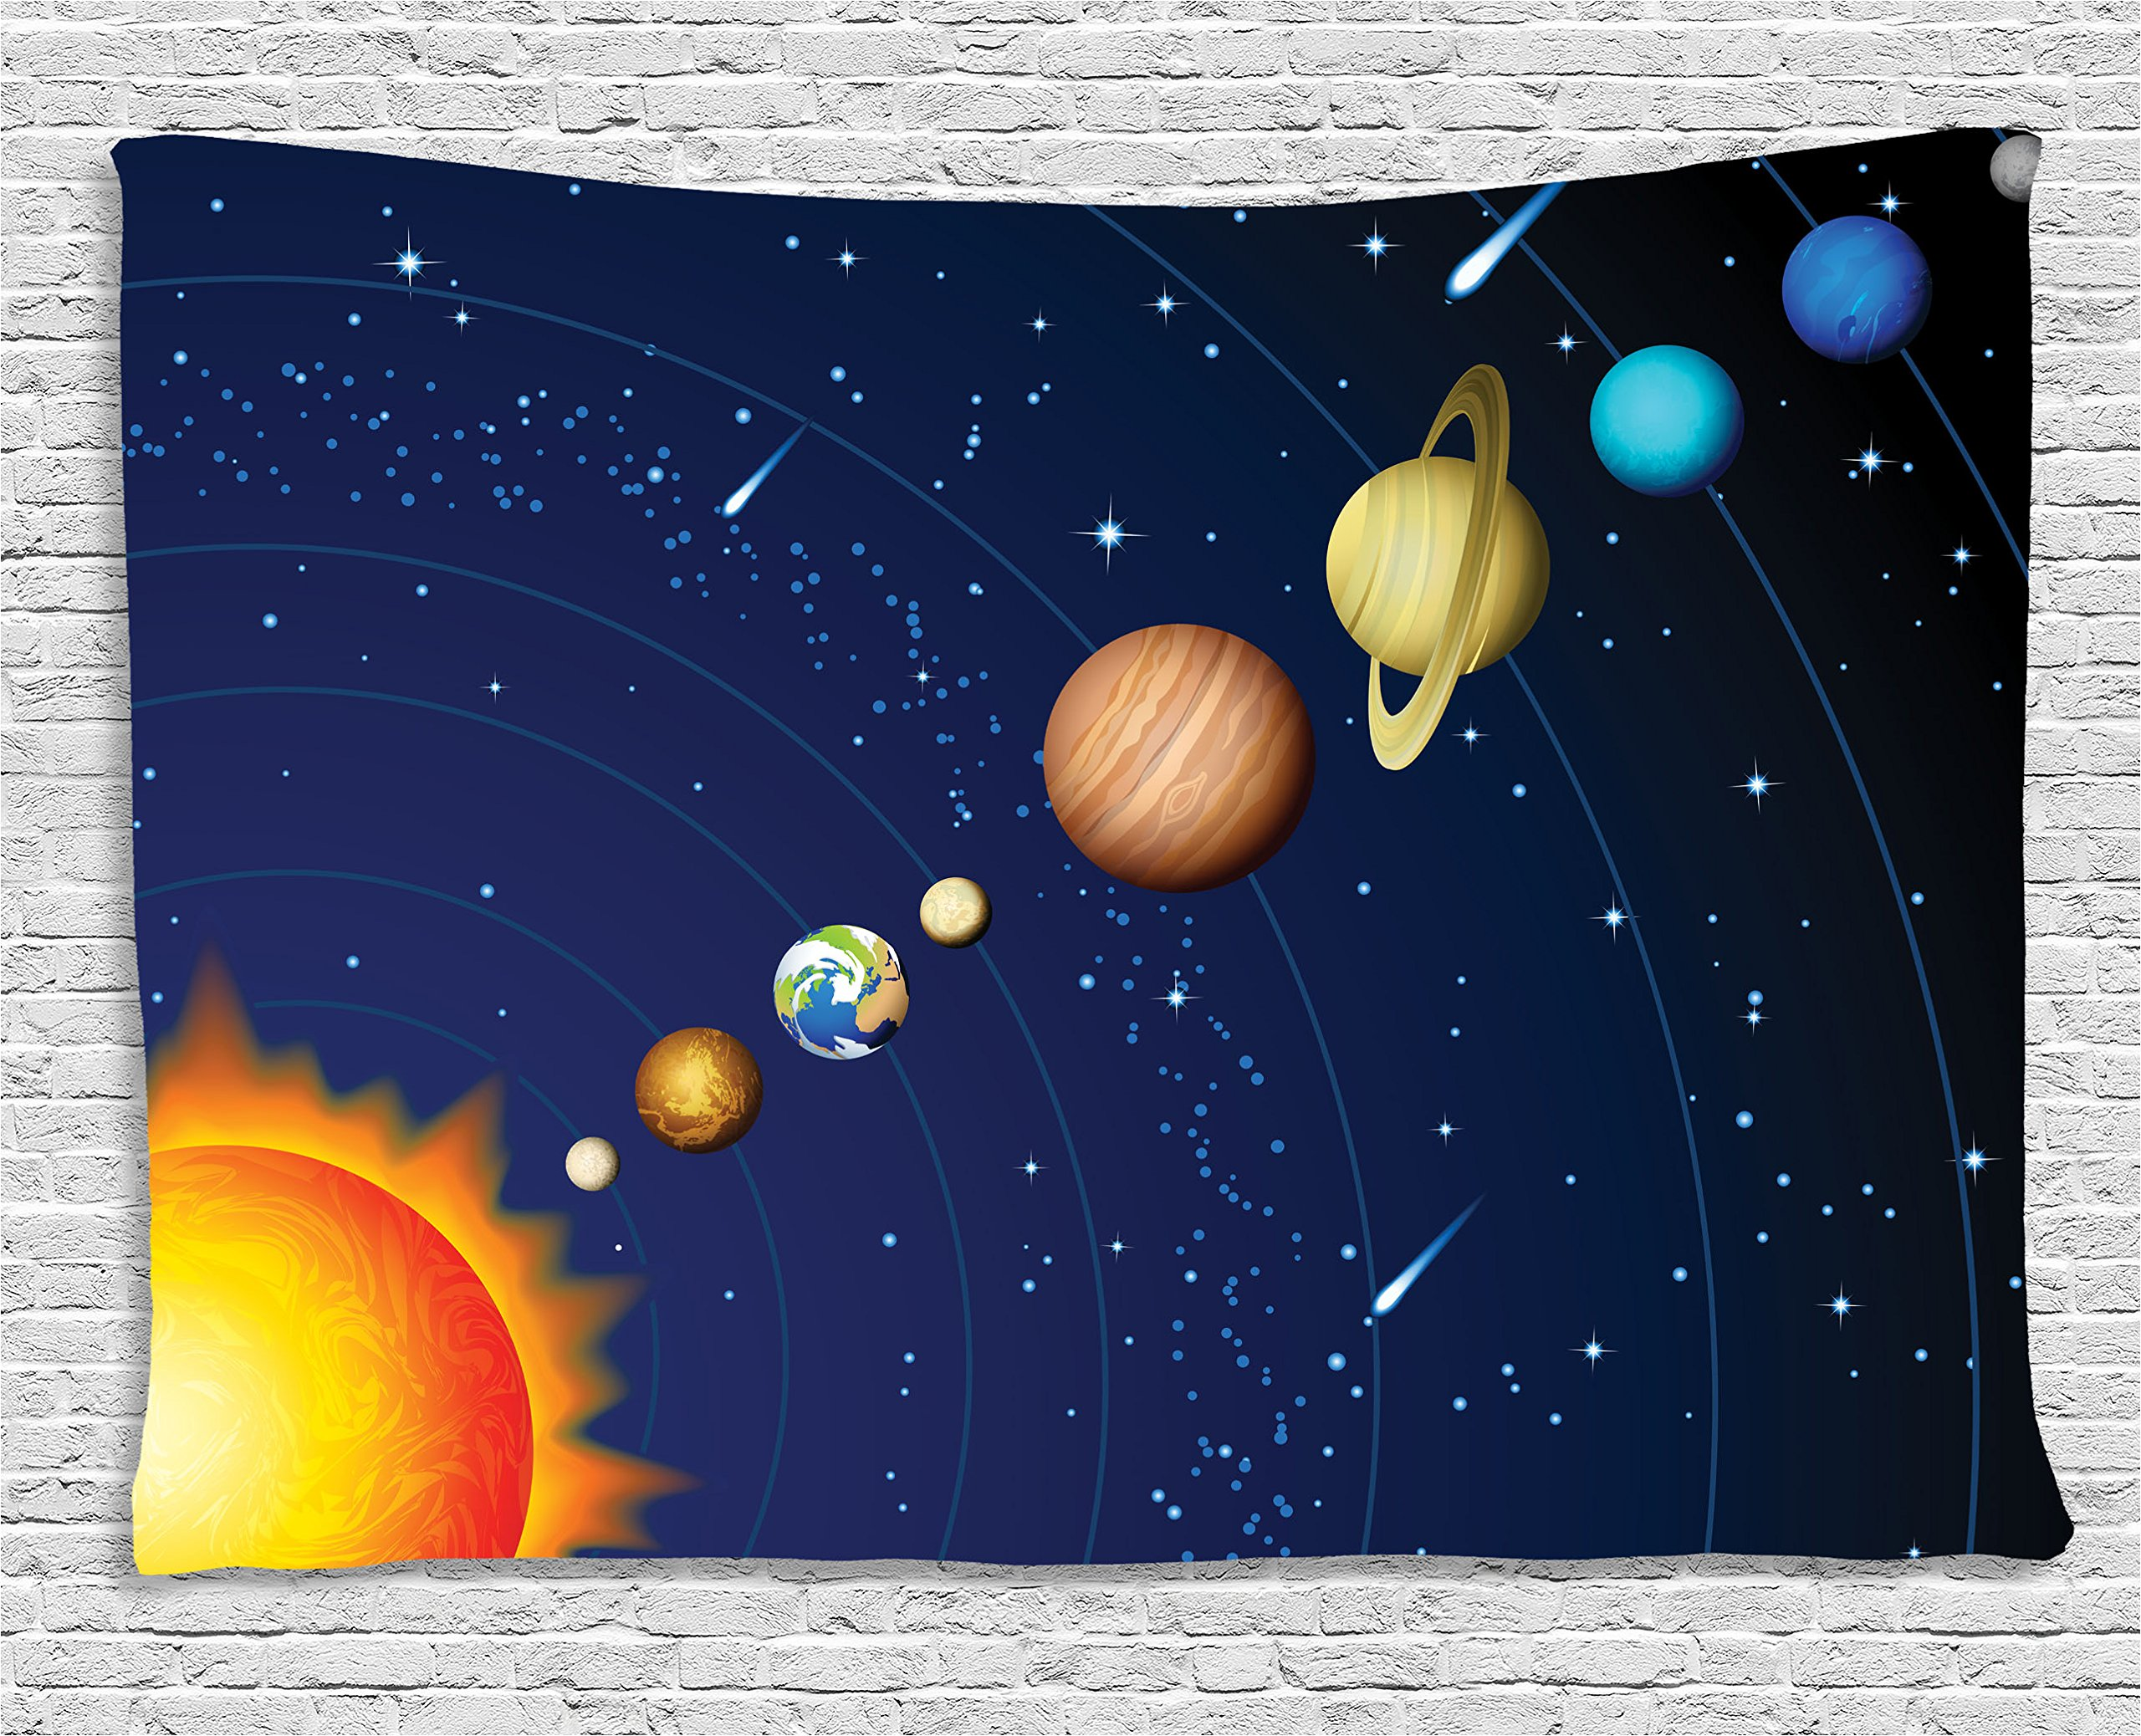 Ambesonne Space Tapestry Decor, Solar System with Sun Uranus Venus Jupiter Mars Pluto Saturn Neptune Image, Wall Hanging for Bedroom Living Room Dorm, 60 W X 40 L inches, Dark Blue Orange